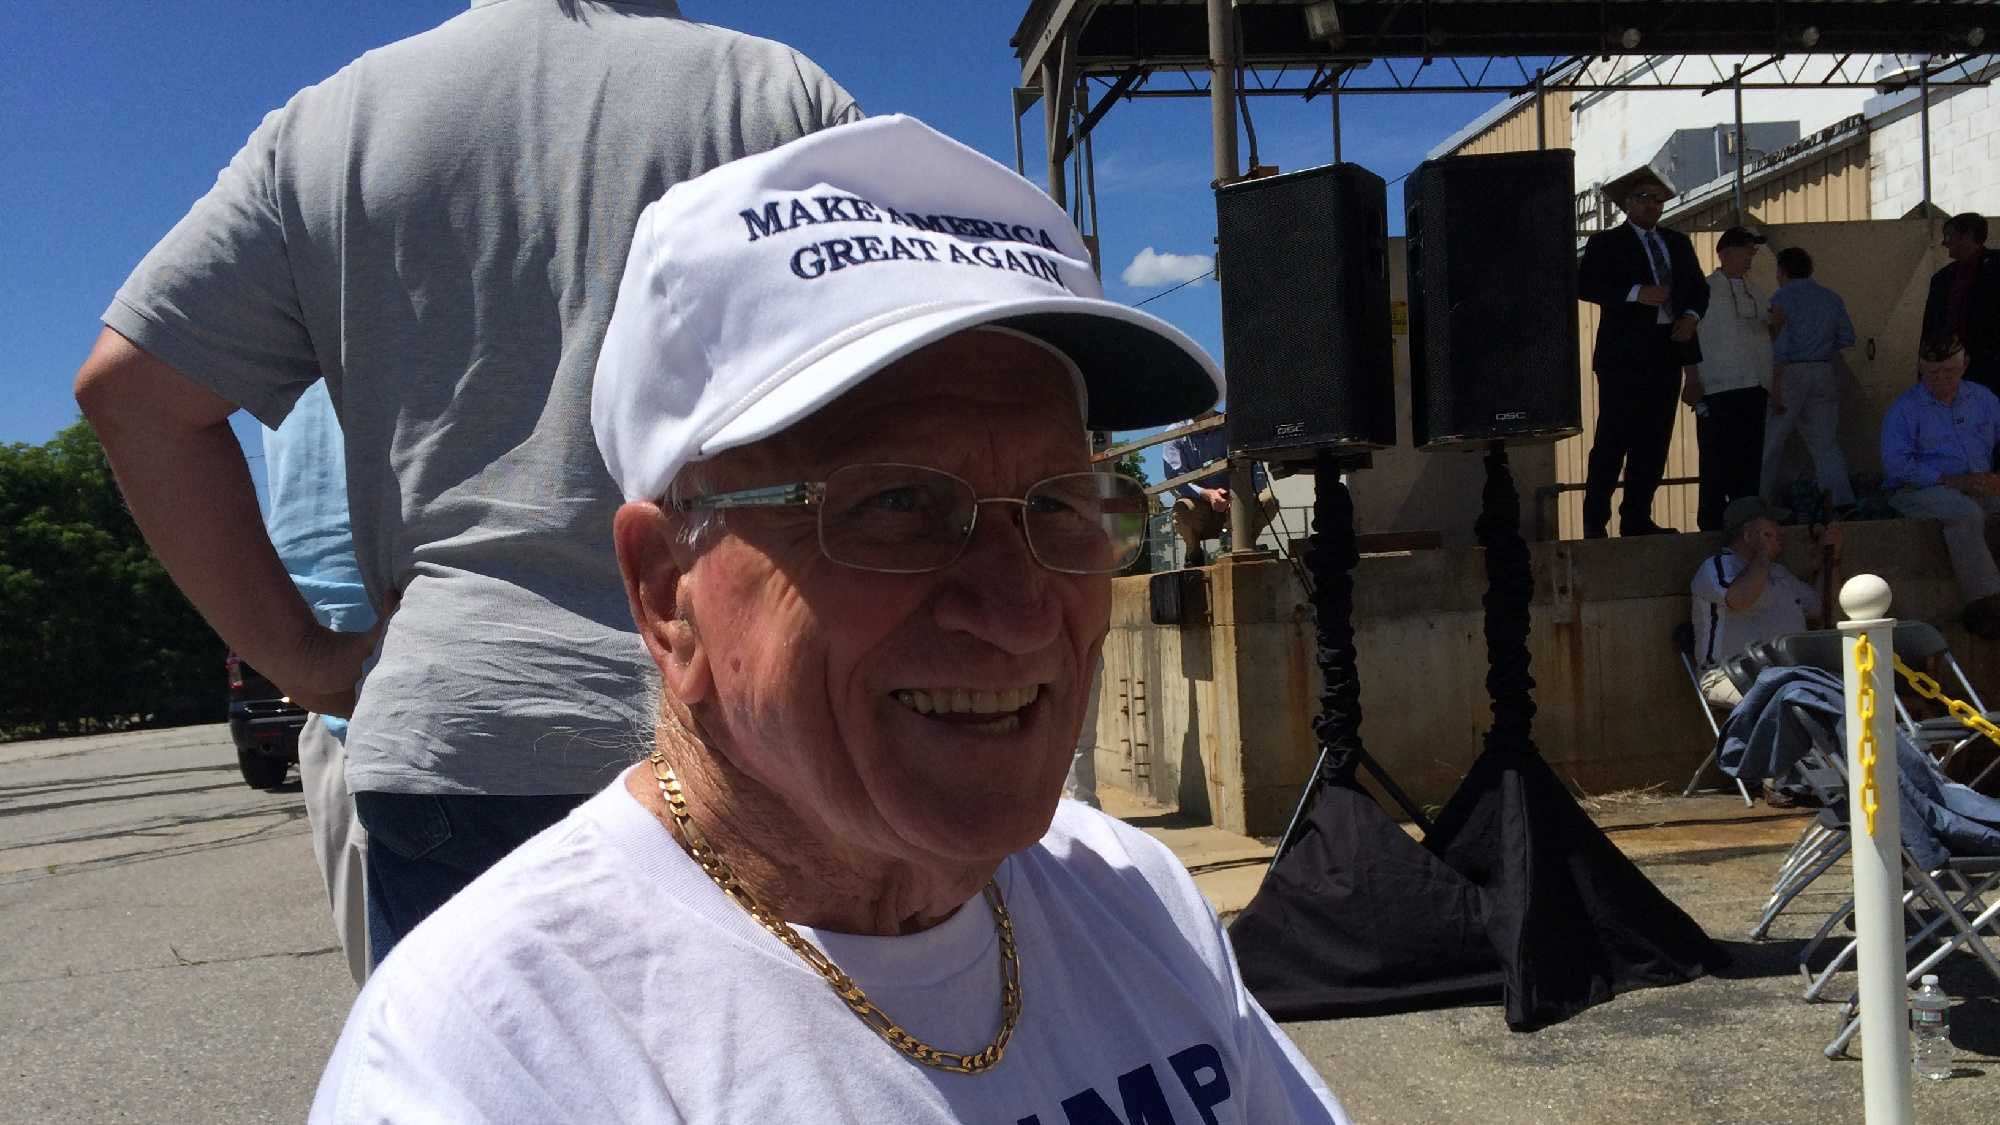 State Rep. Bob Elliott of Salem at Donald Trump's event in Manchester Thursday. (John DiStaso/WMUR)